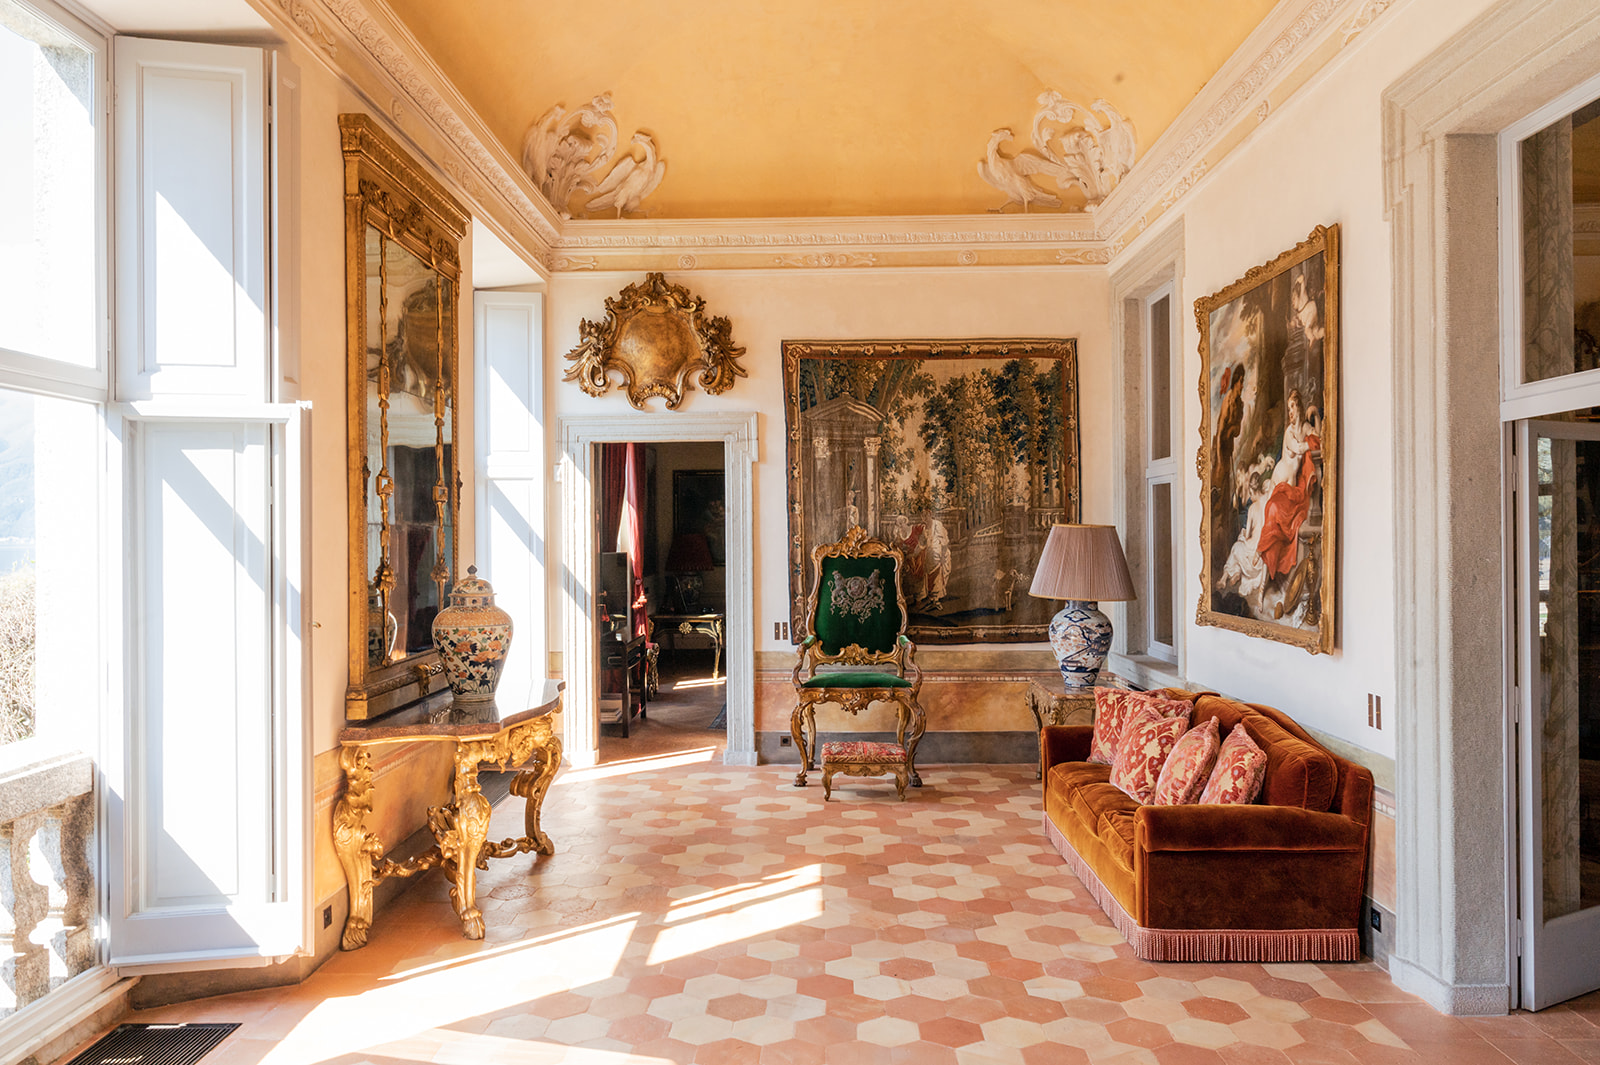 Villa Balbiano's luxurious interiors with gold antique frames and classical furniture